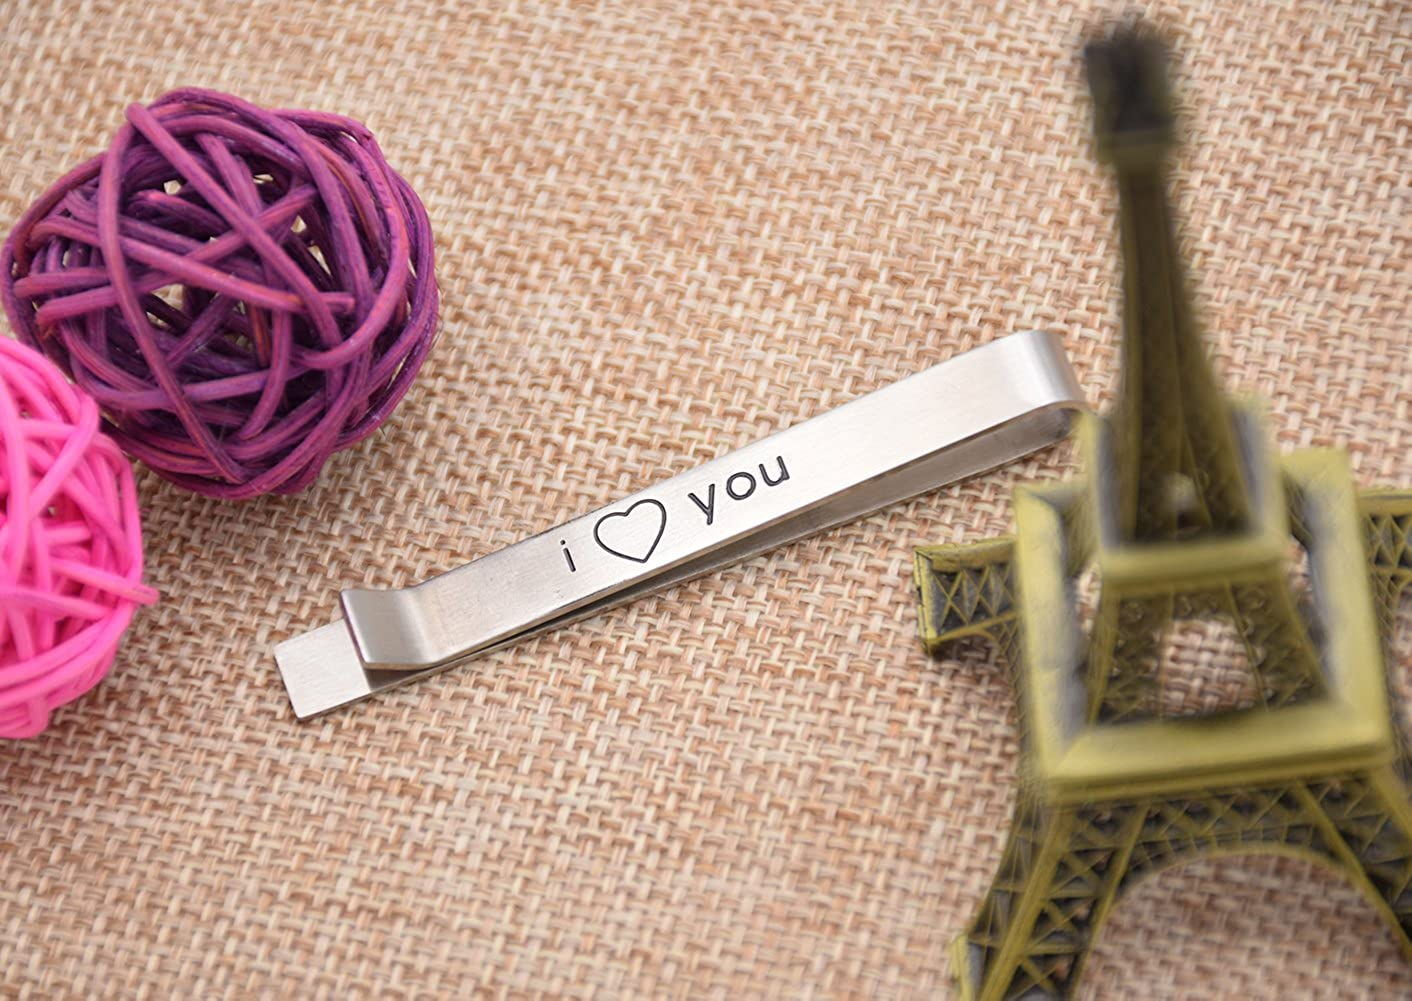 O.RIYA Gifts for Men Mens Groom Husband Tie Clip for Hi Forever and Always Gift Tie Clip Wedding Tie Bar